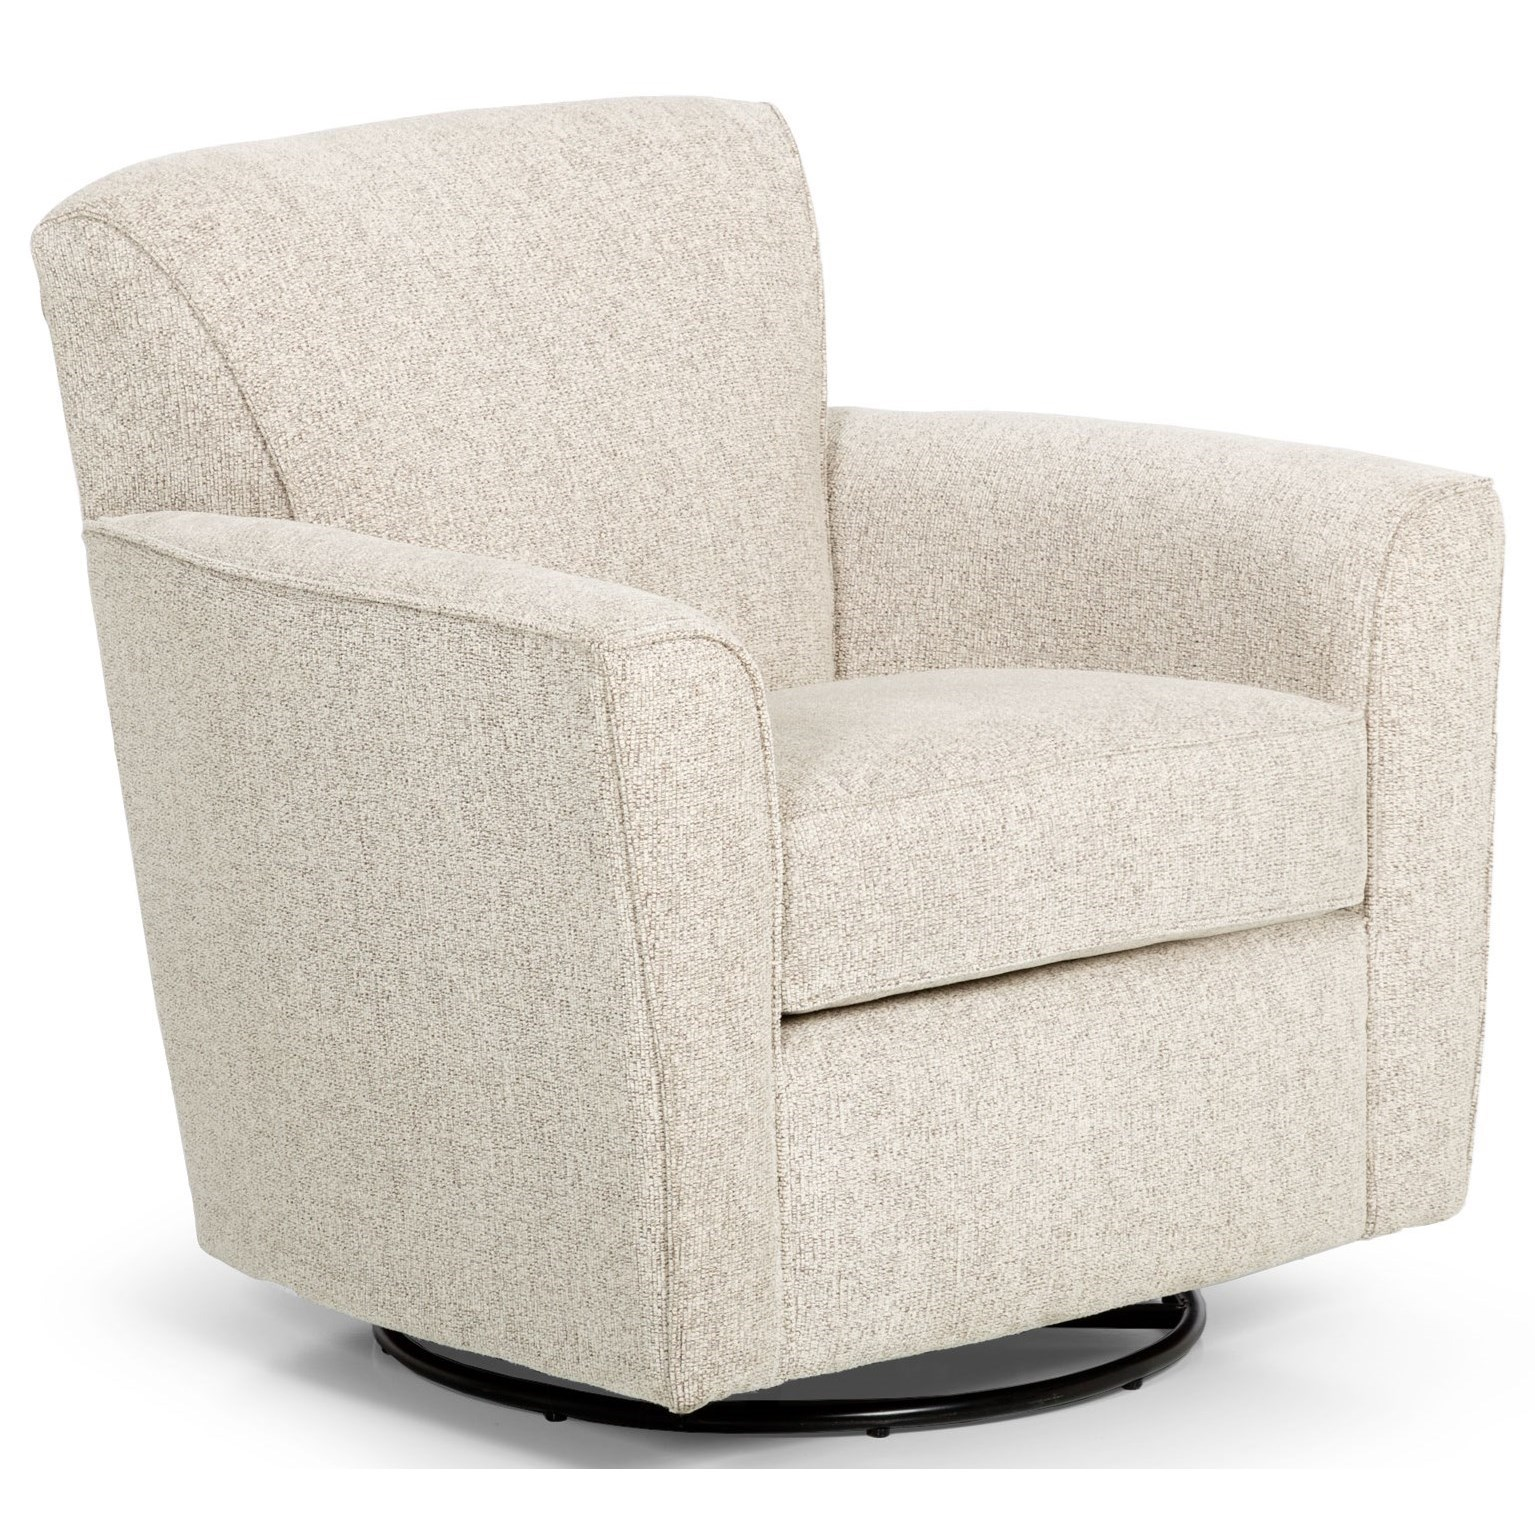 29057 Swivel Glider Chair by Sunset Home at Sadler's Home Furnishings